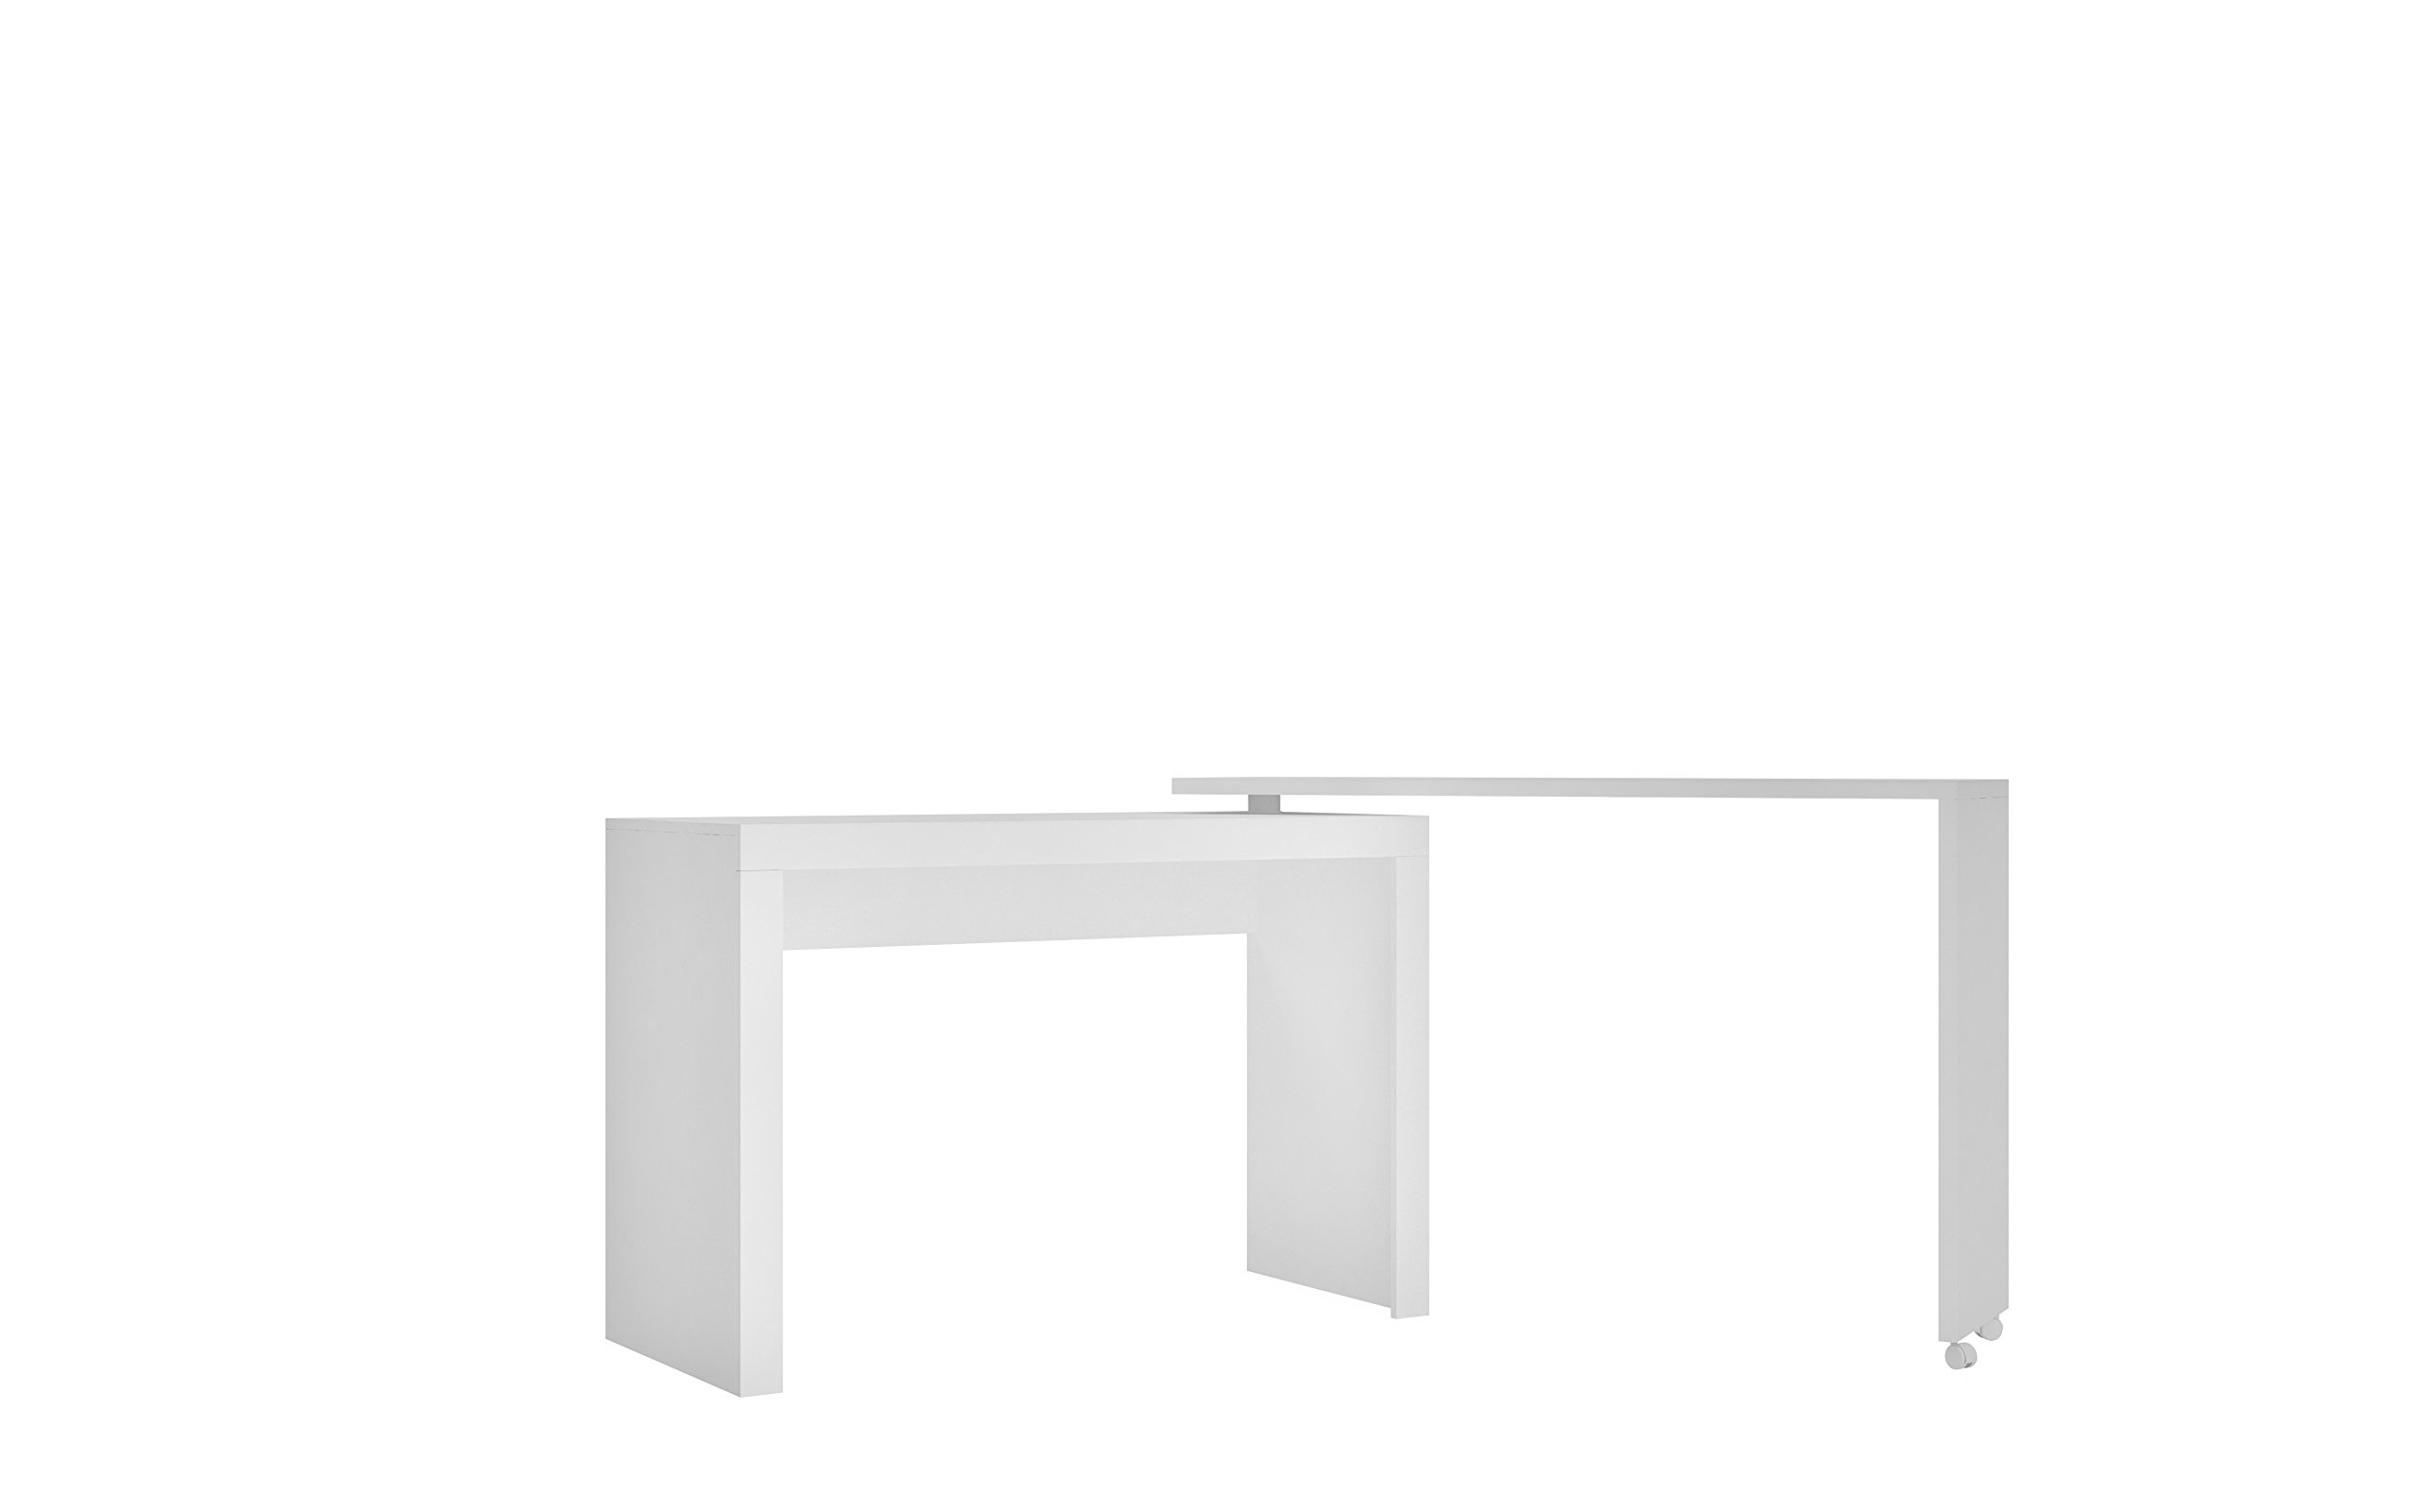 Manhattan Comfort Innovative Calabria Convertible Nested L-Shaped Office or Children's Bedroom Desk, Tobacco